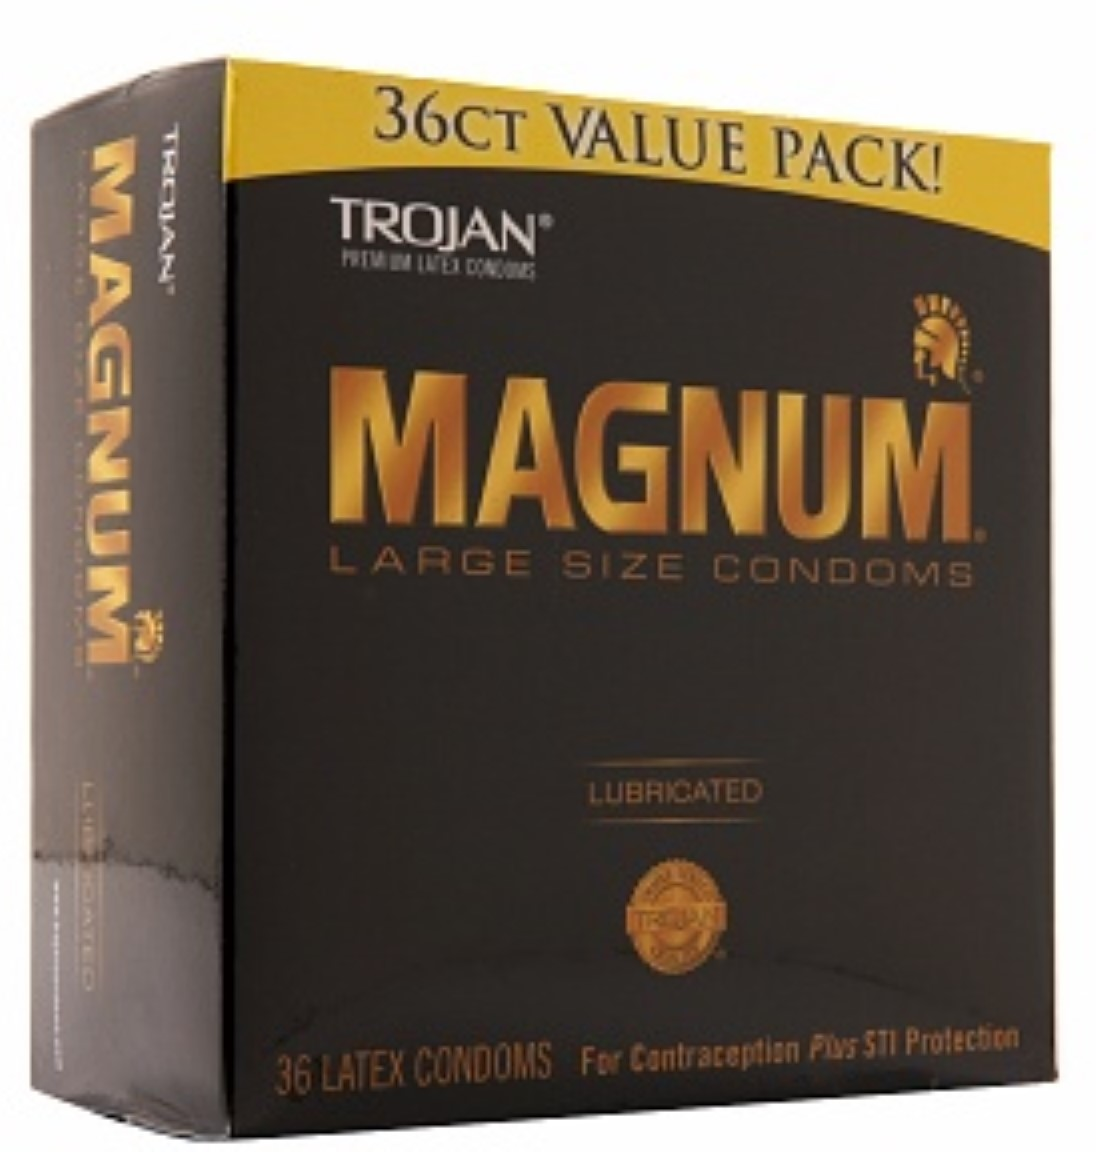 TROJAN Magnum Lubricated Latex Condoms, Large Size 36 ea (Pack of 4)